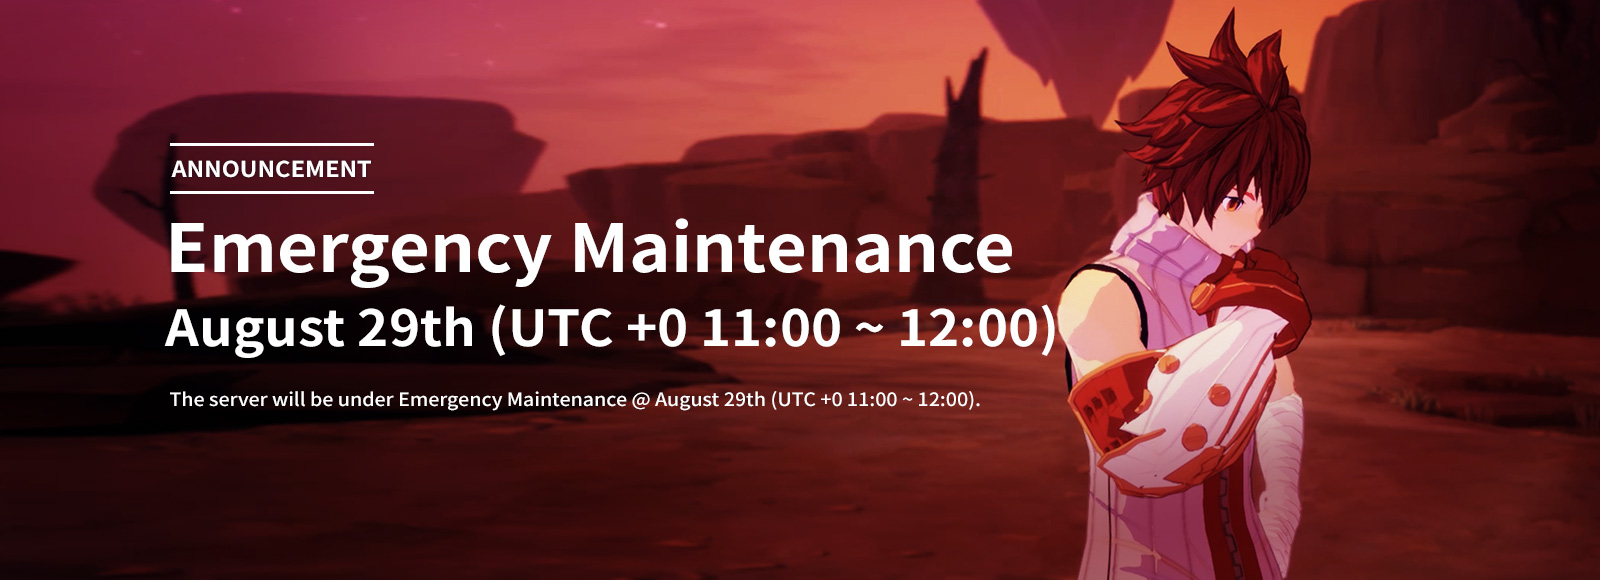 August 29th Emergency Maintenance Announcement